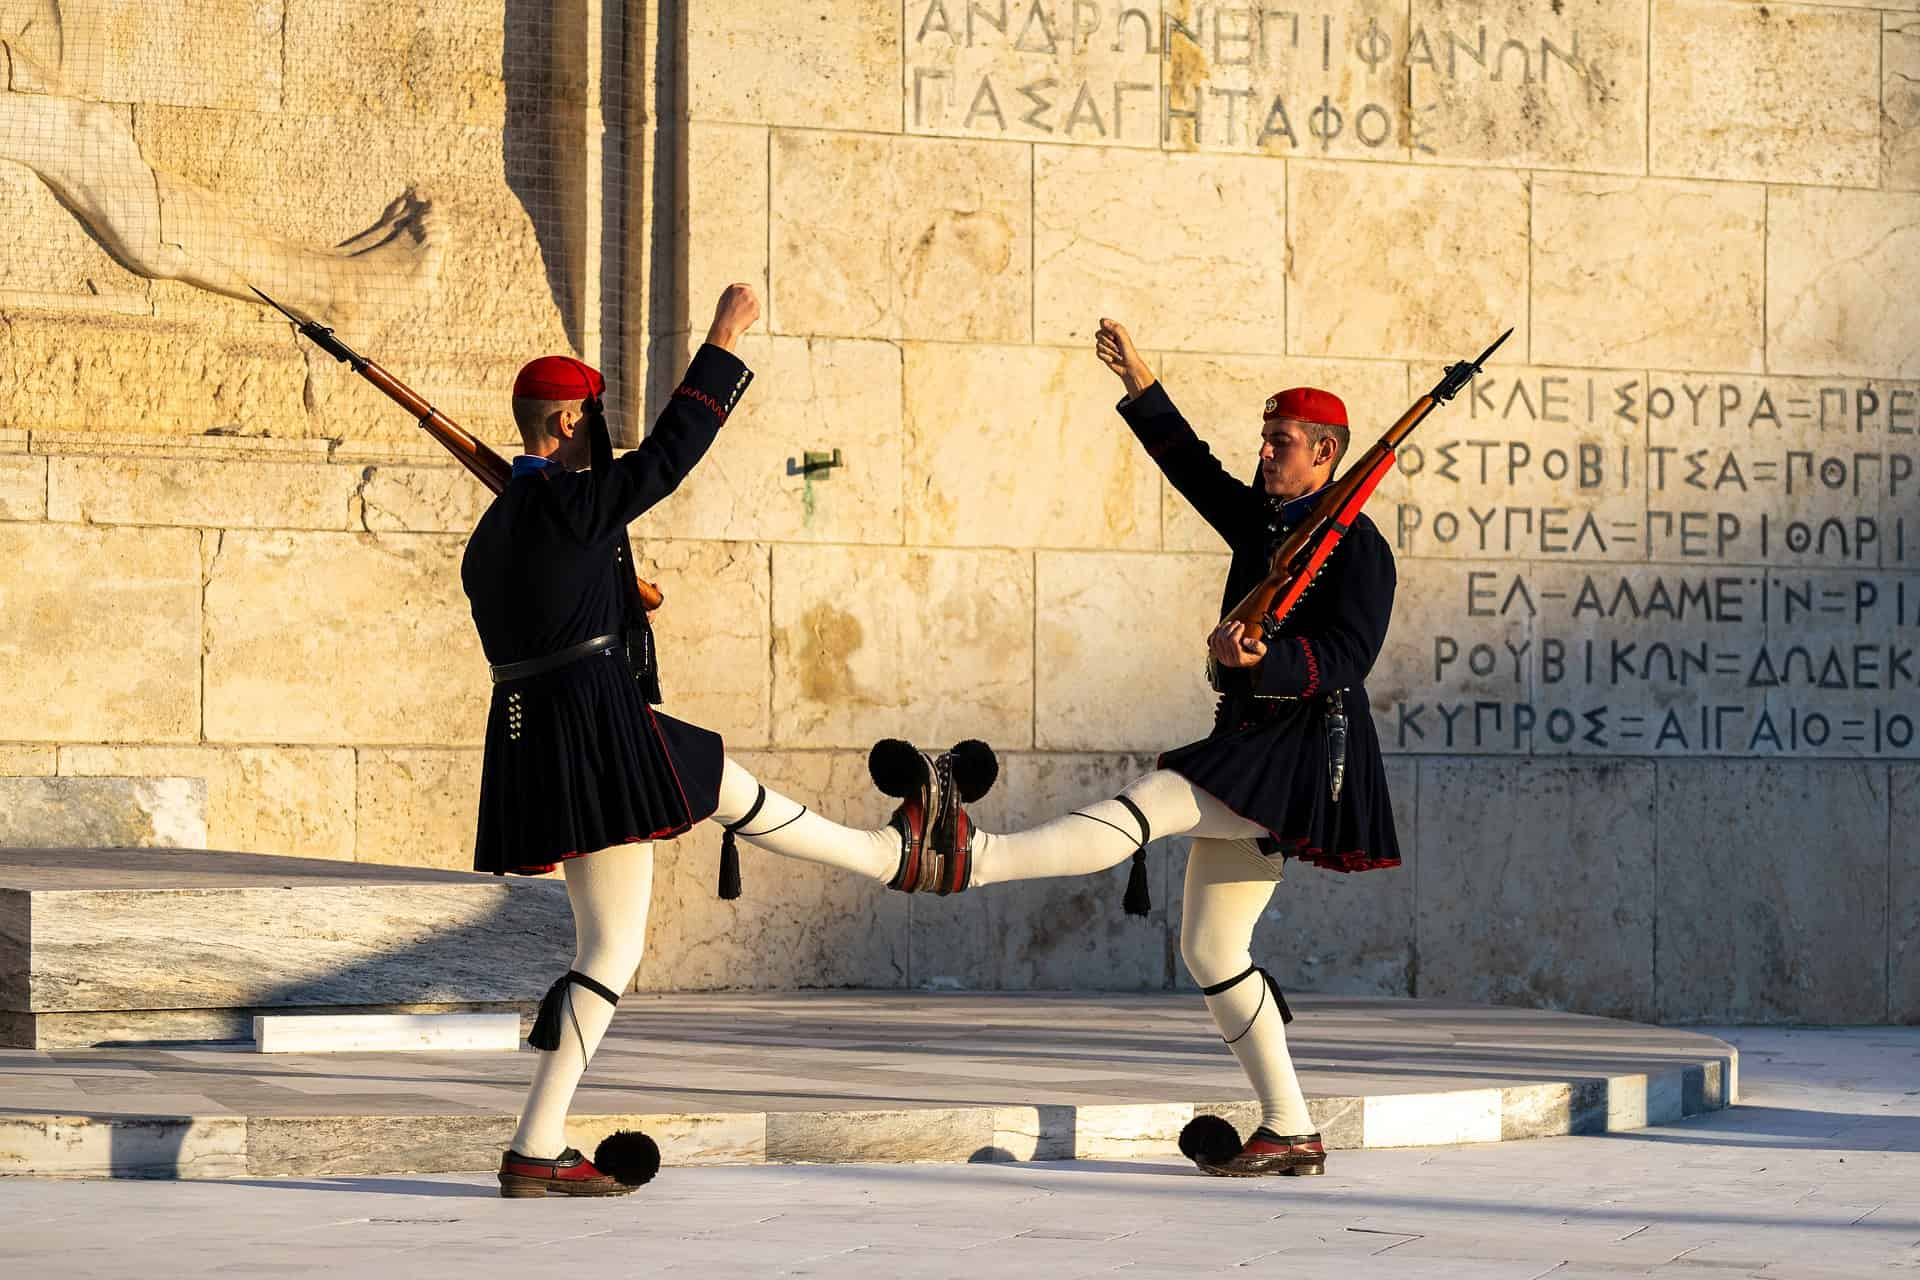 Athens Gay Dance Clubs